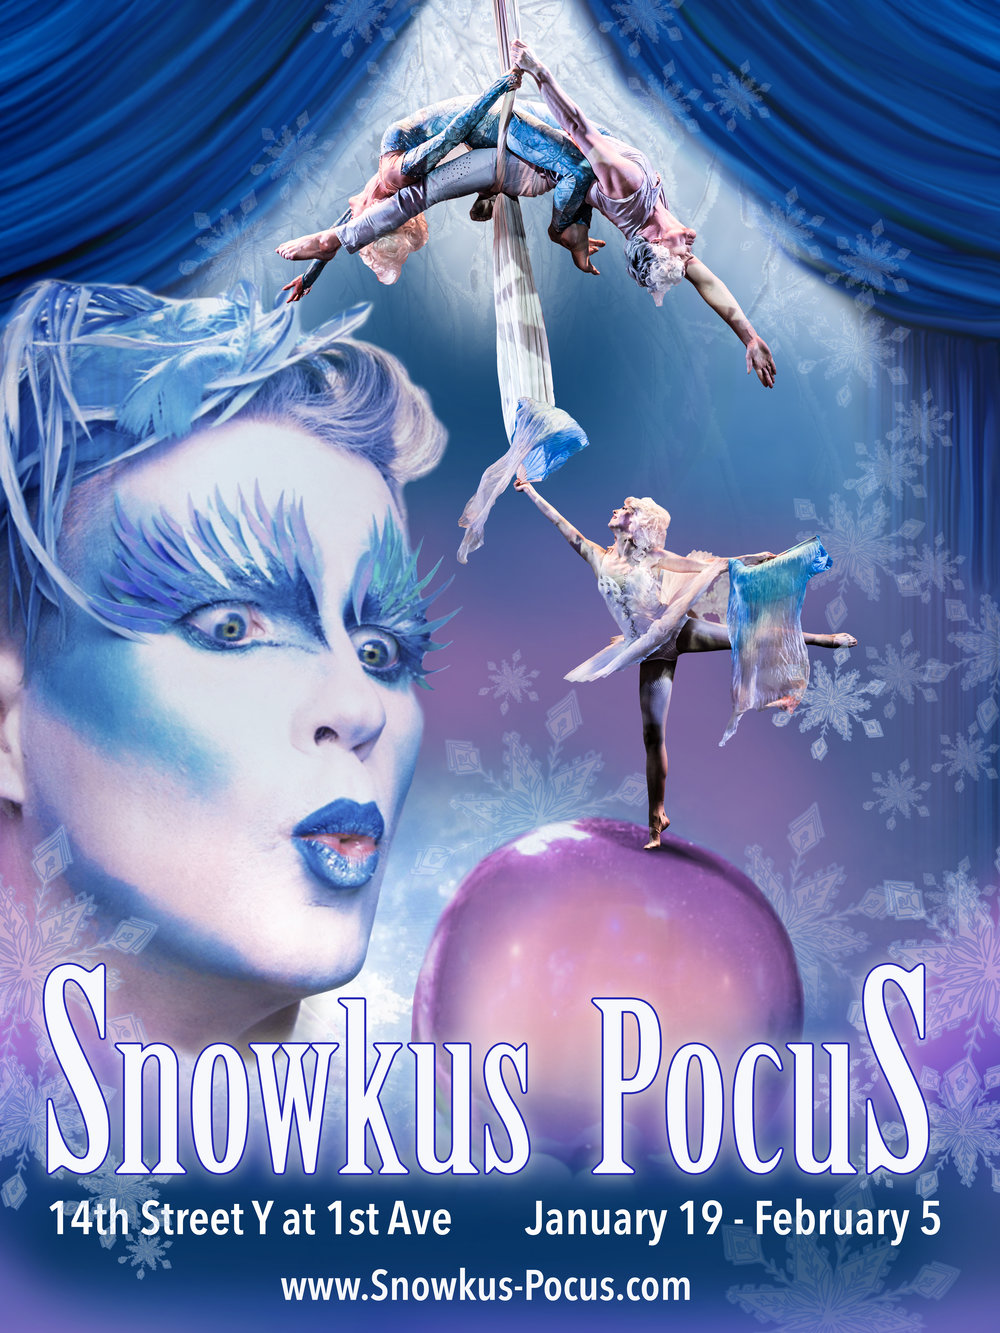 Snowkus Pocus - Poster - 14th St. Y - 2017 - version 1 - Hir-res.jpg